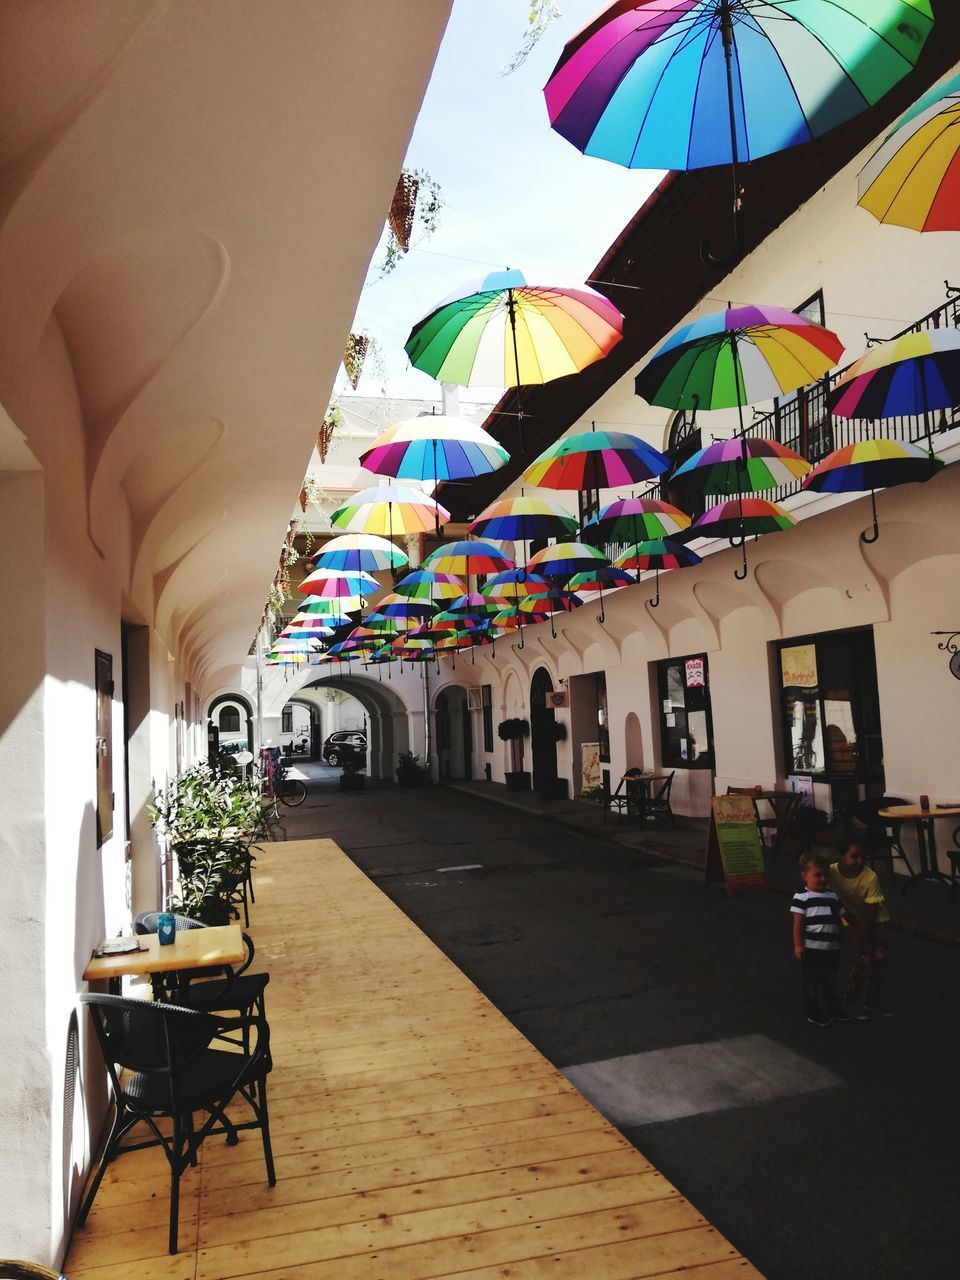 architecture, built structure, building exterior, seat, building, table, chair, restaurant, multi colored, umbrella, parasol, nature, day, business, decoration, outdoors, no people, potted plant, cafe, ceiling